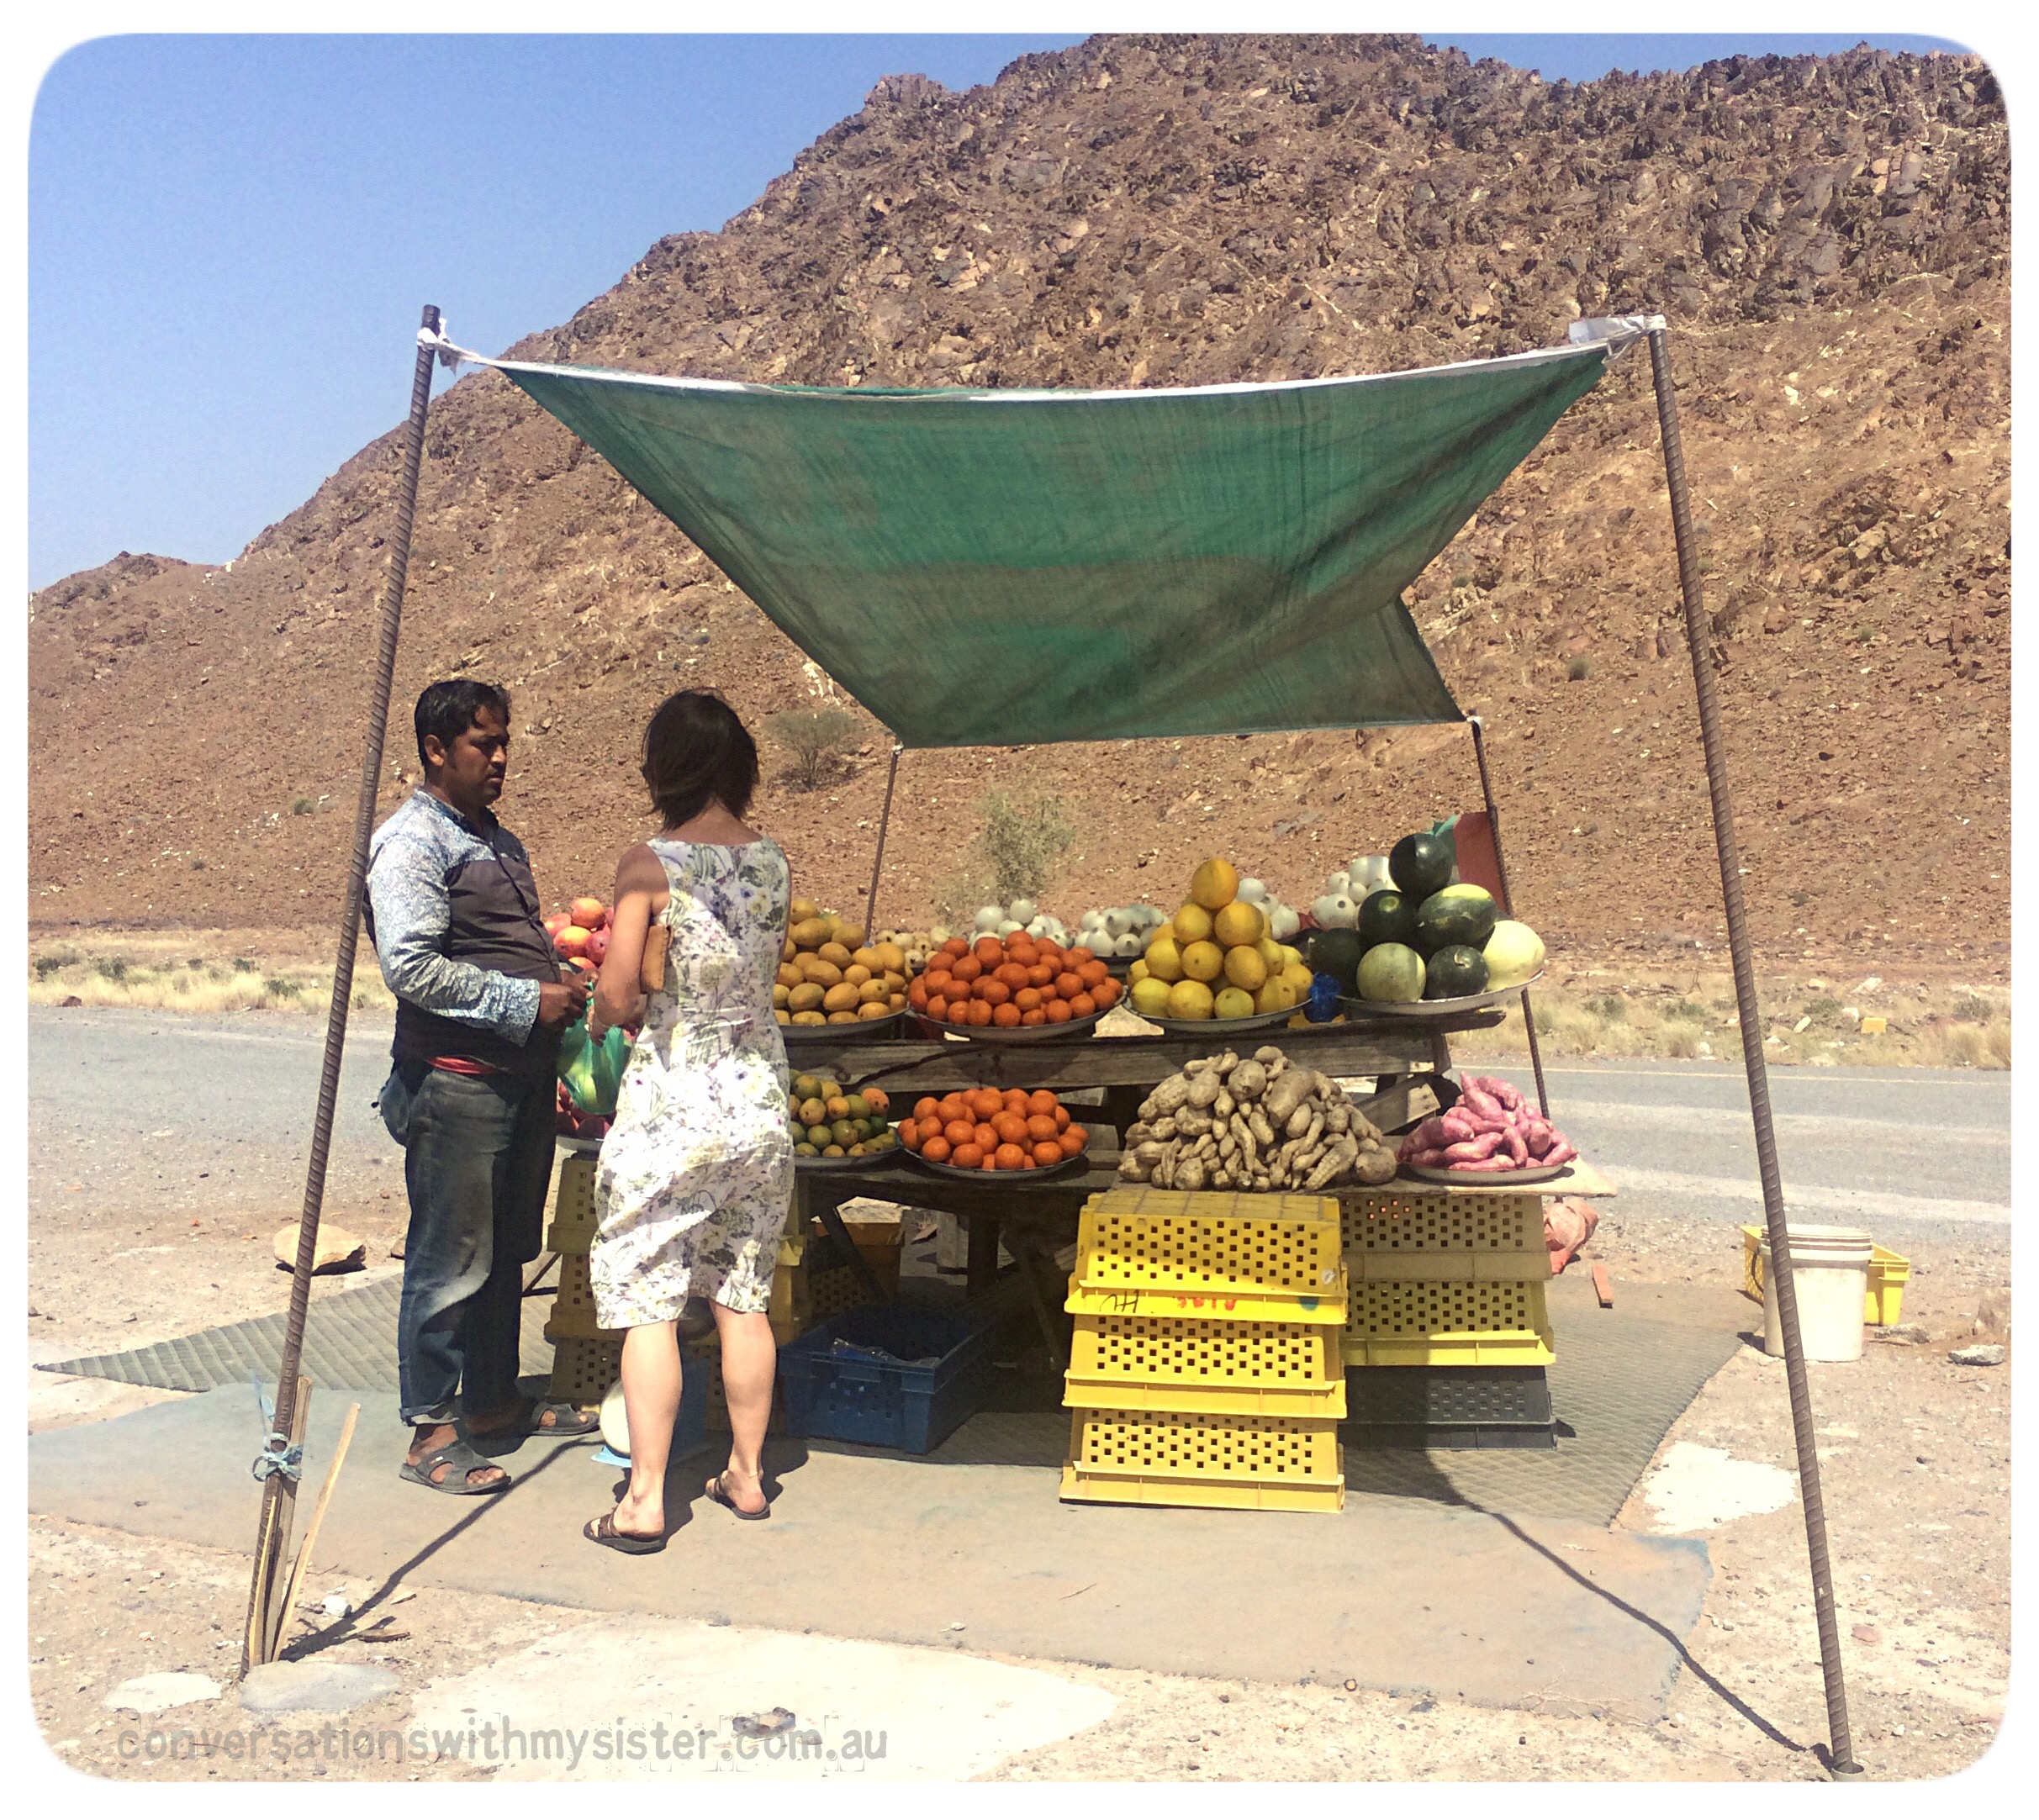 3 Reasons why you need to go on a road trip to Fujairah_conversationswithmysister.com.au